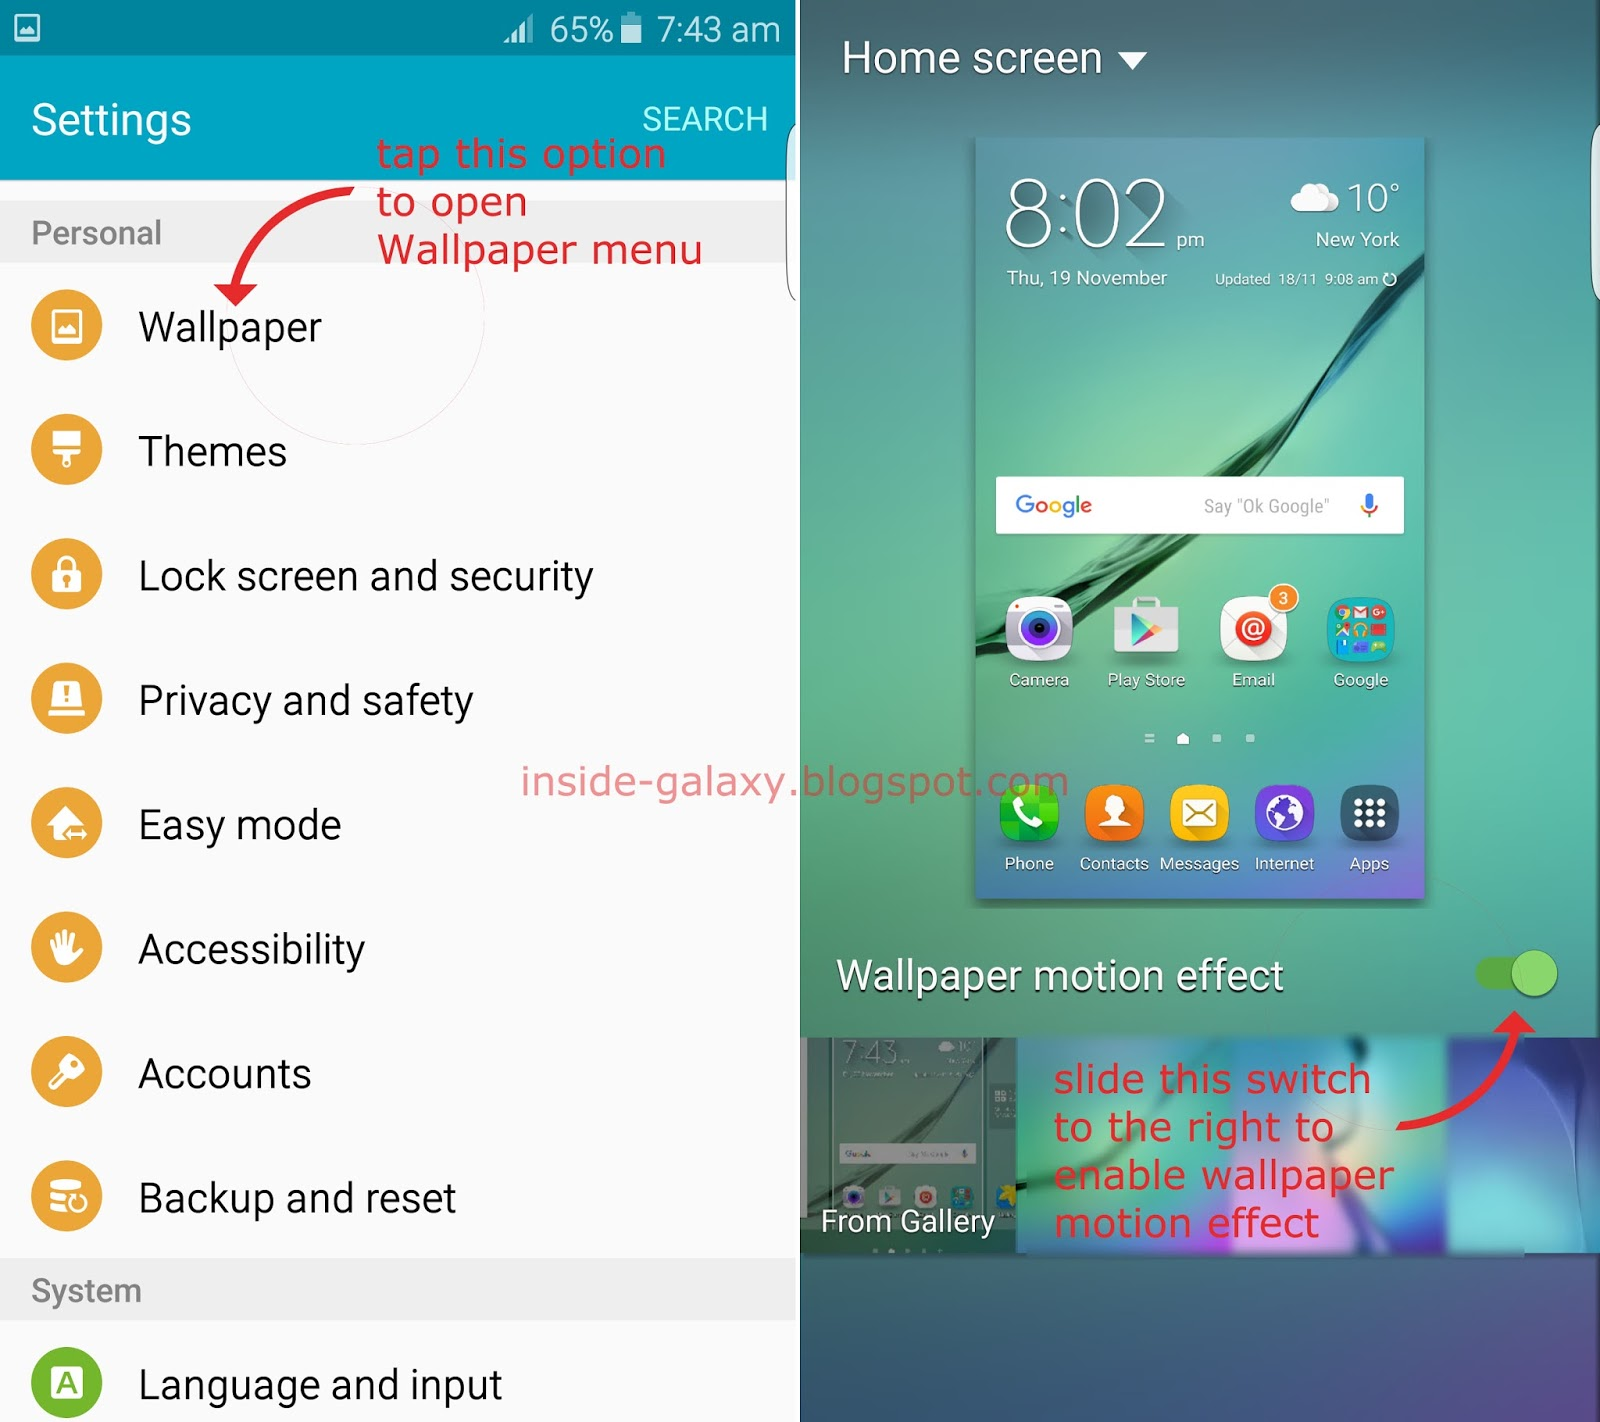 Samsung Galaxy S6 Edge How To Enable And Use Wallpaper Motion